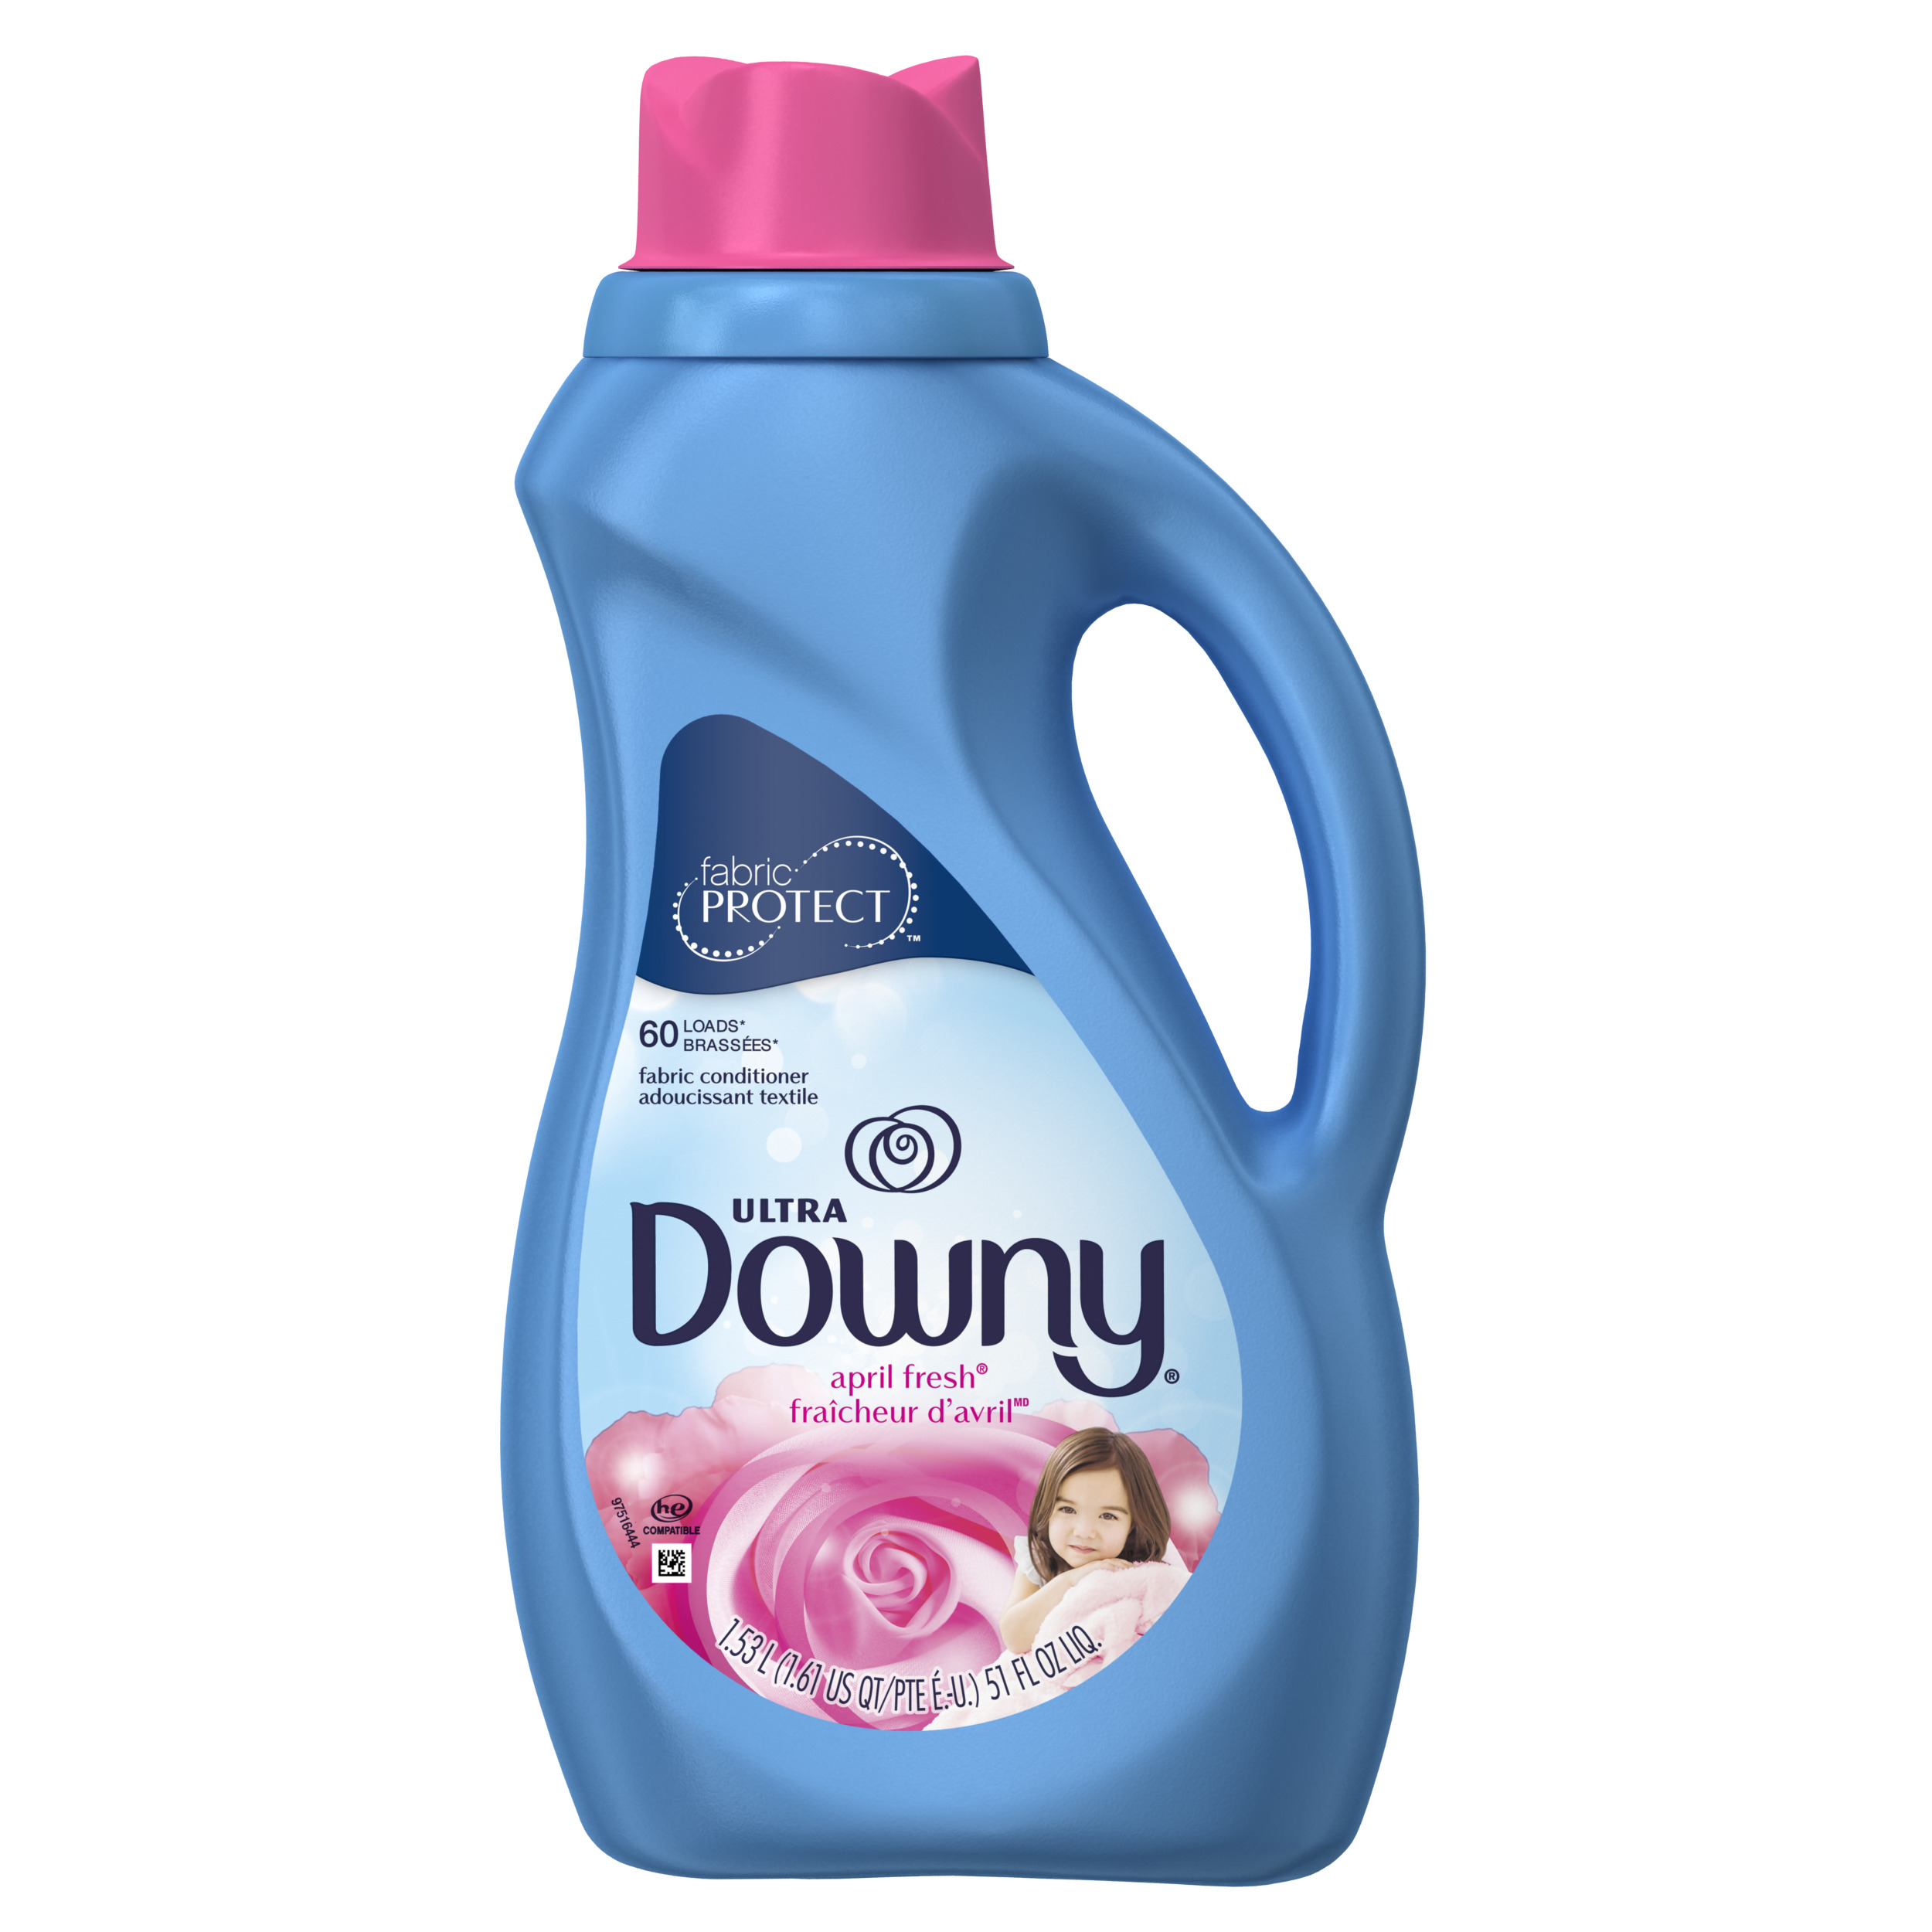 Downy Ultra Liquid Fabric Conditioner, April Fresh, 60 Loads, 51 fl oz